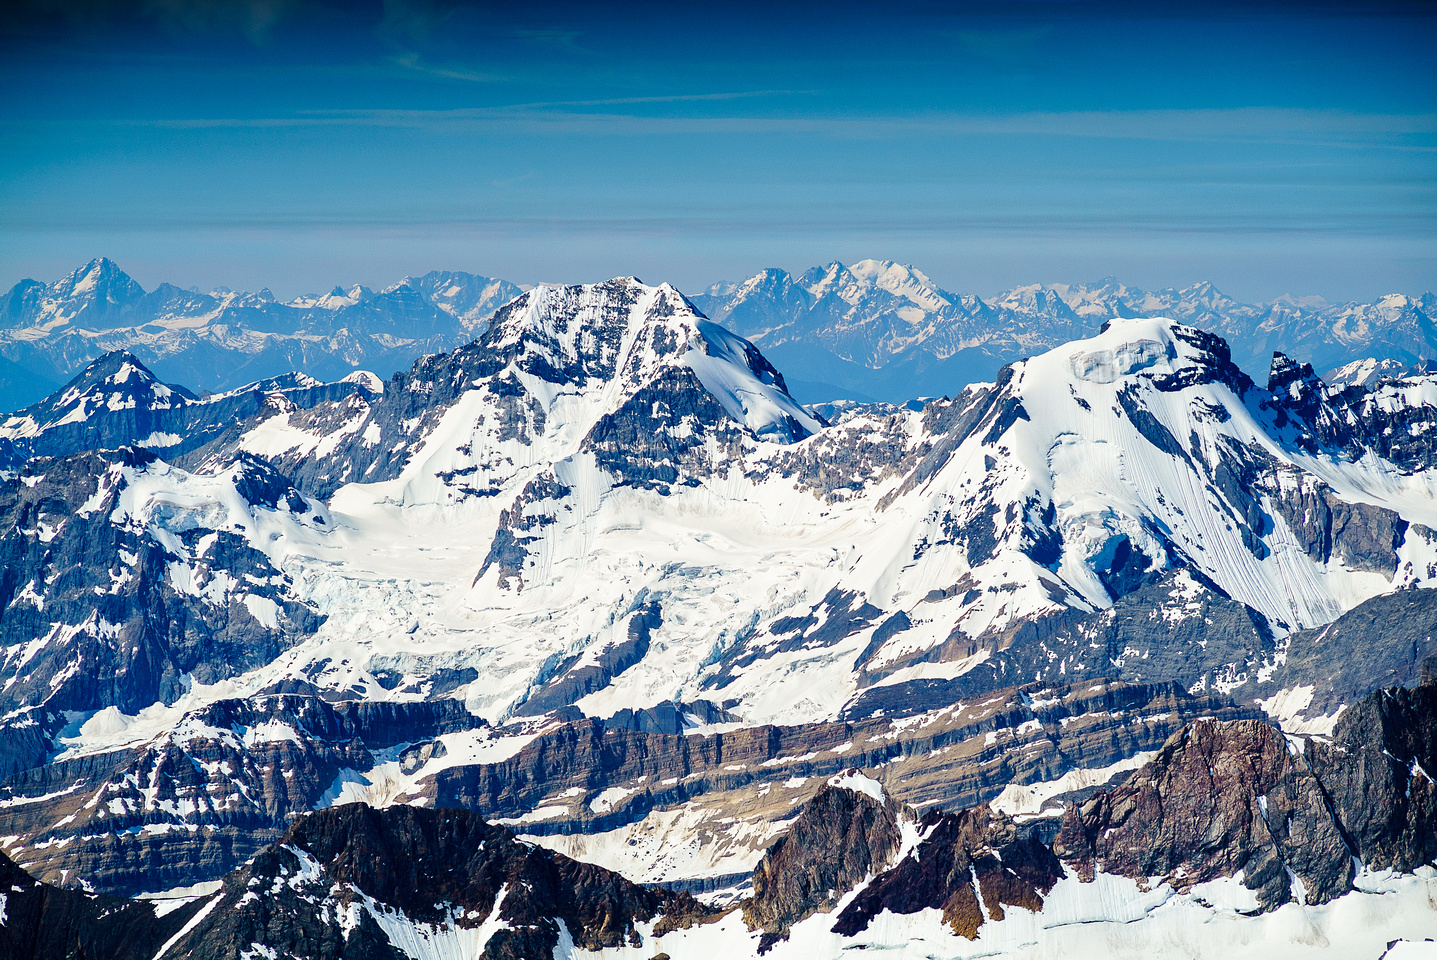 Sir Donald (L) and Mount Rogers (R) in the distance with Rostrum, Bush and Icefall peaks in the foreground.